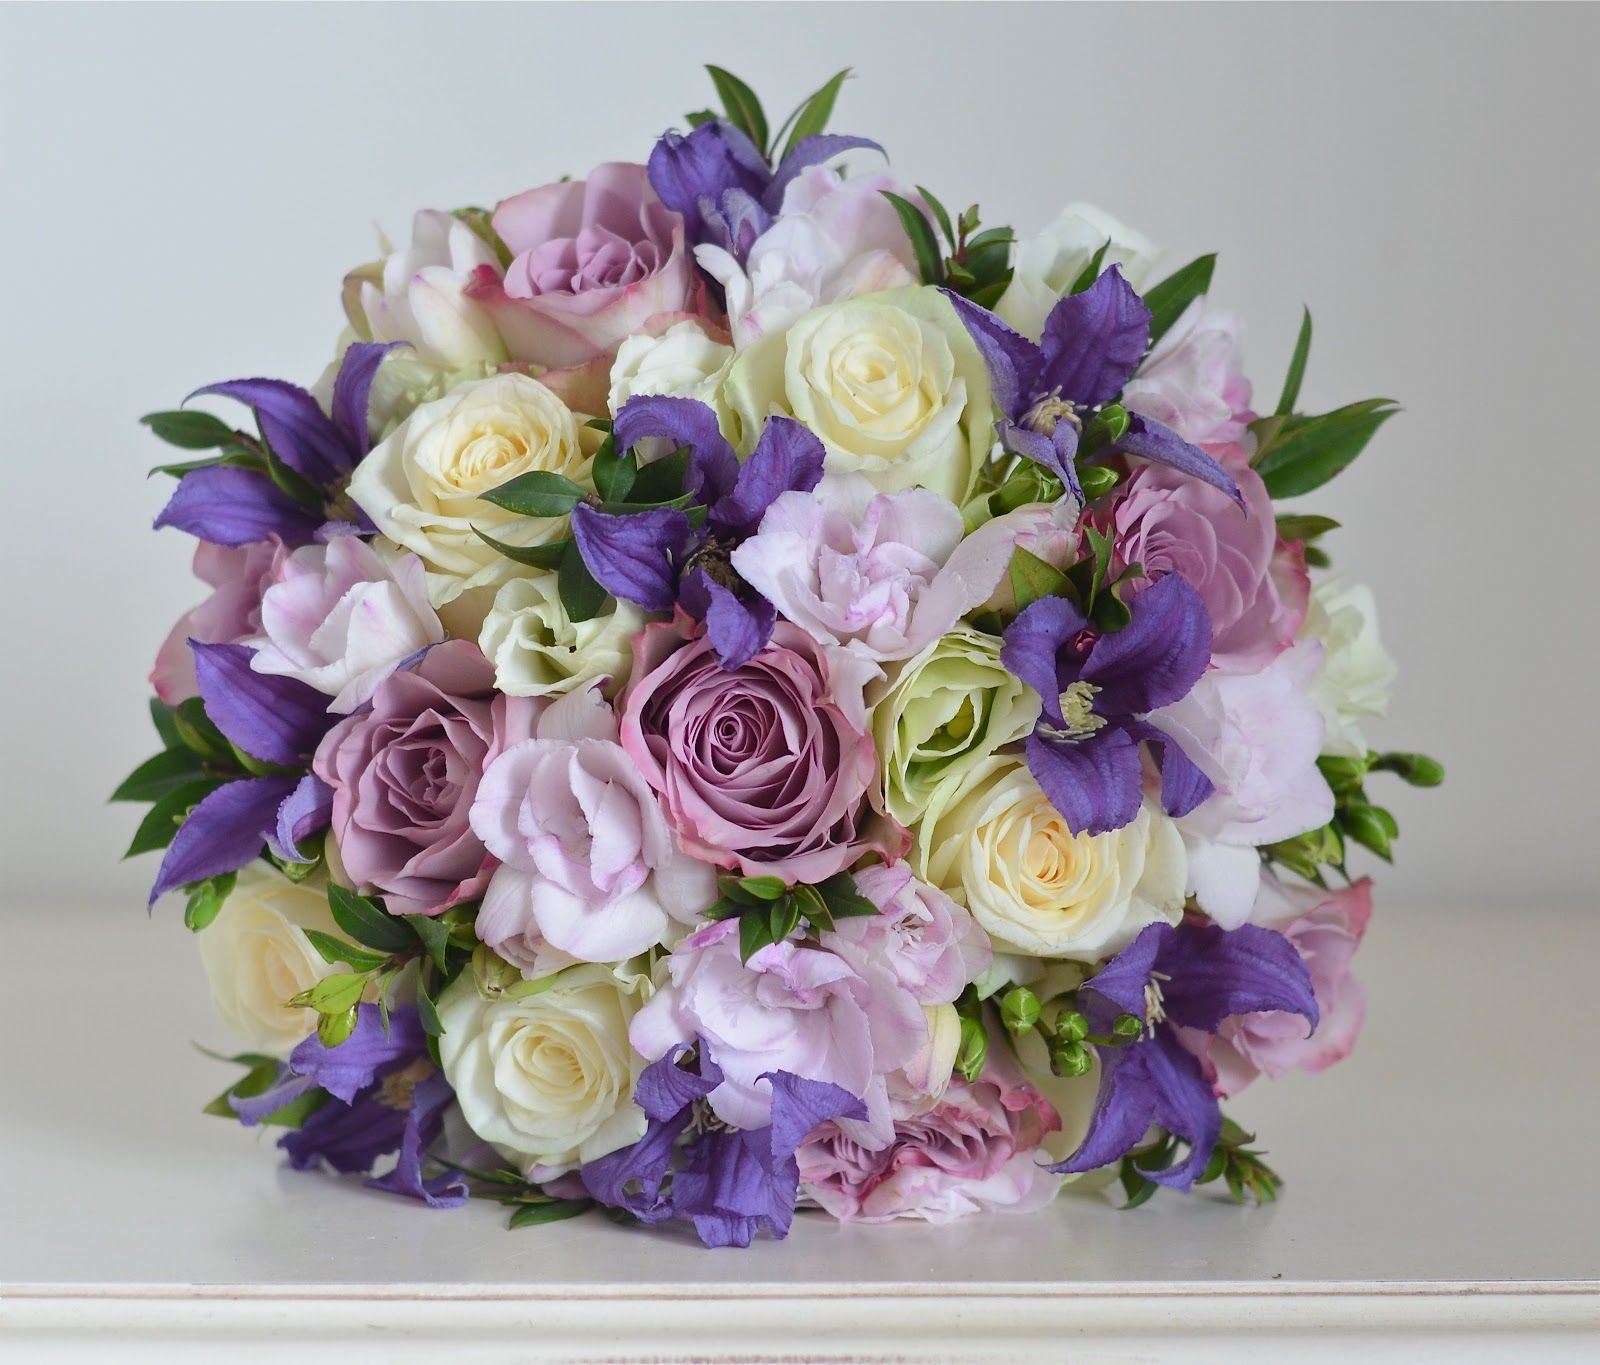 Pink mauve bouquet google search pastel wedding bouquets sue wedding flowers shoe exton bouquet flower beautiful bouquets 1929174 weddbook displaying 19 gallery images for the end sign colorful ask susan dhlflorist Image collections